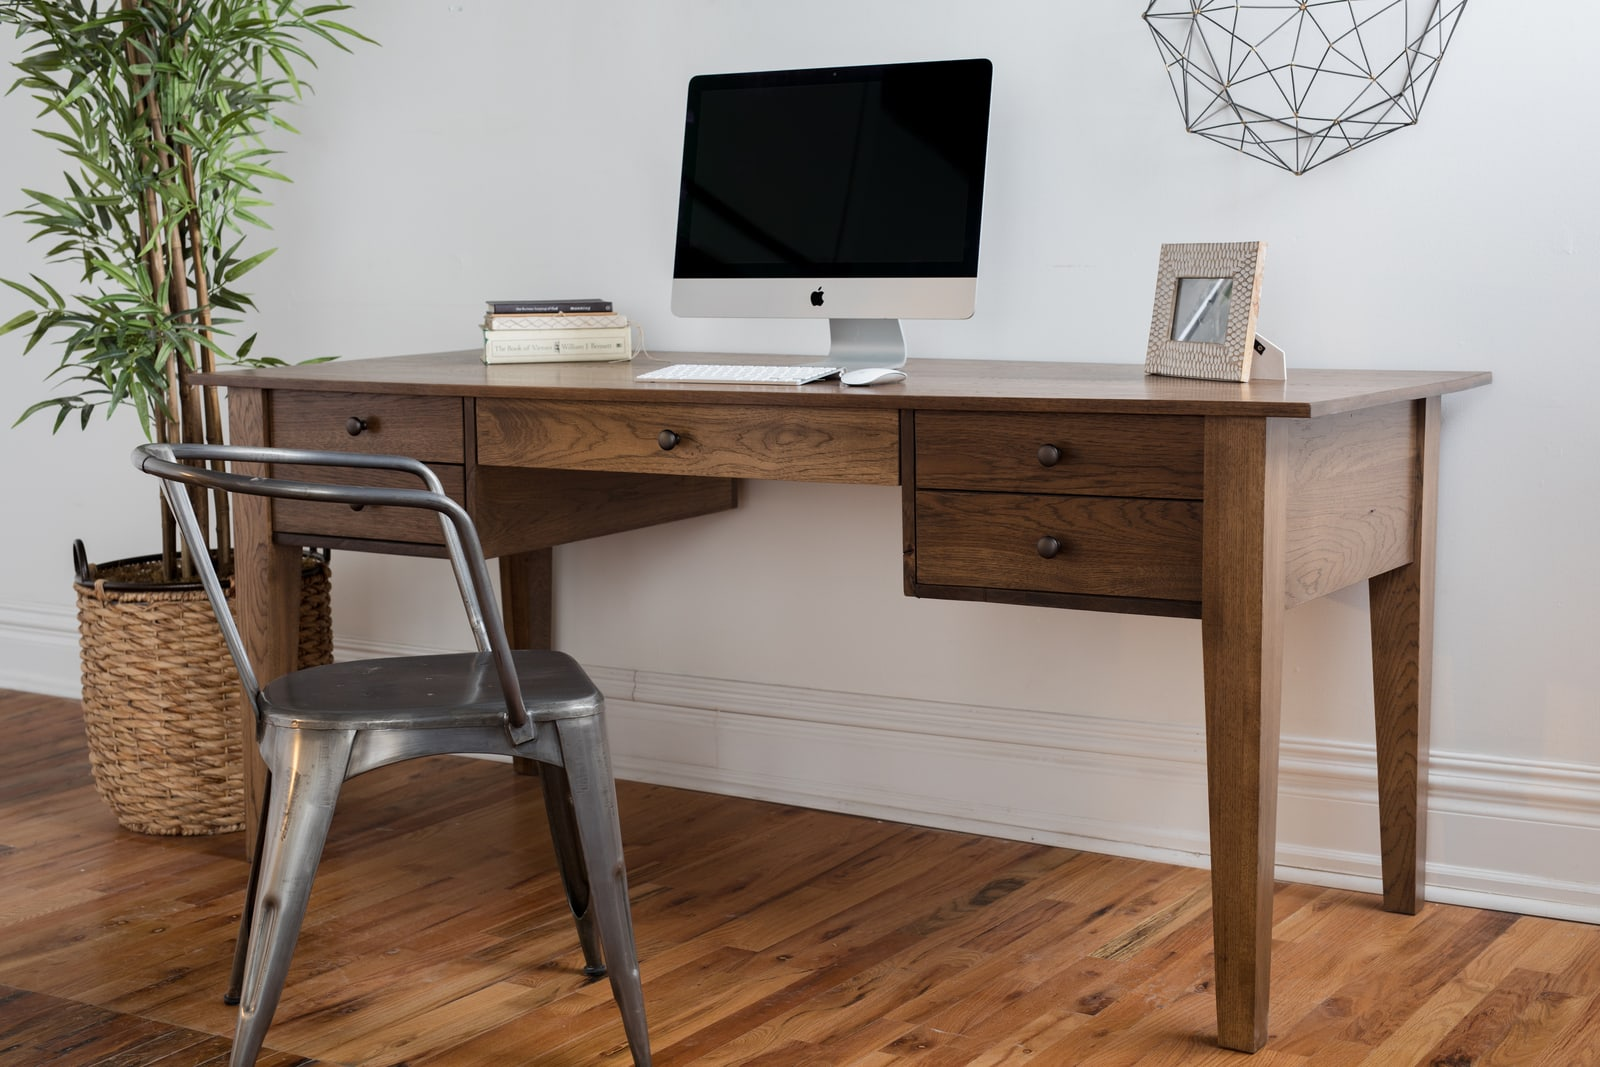 Custom desk and chair in home office